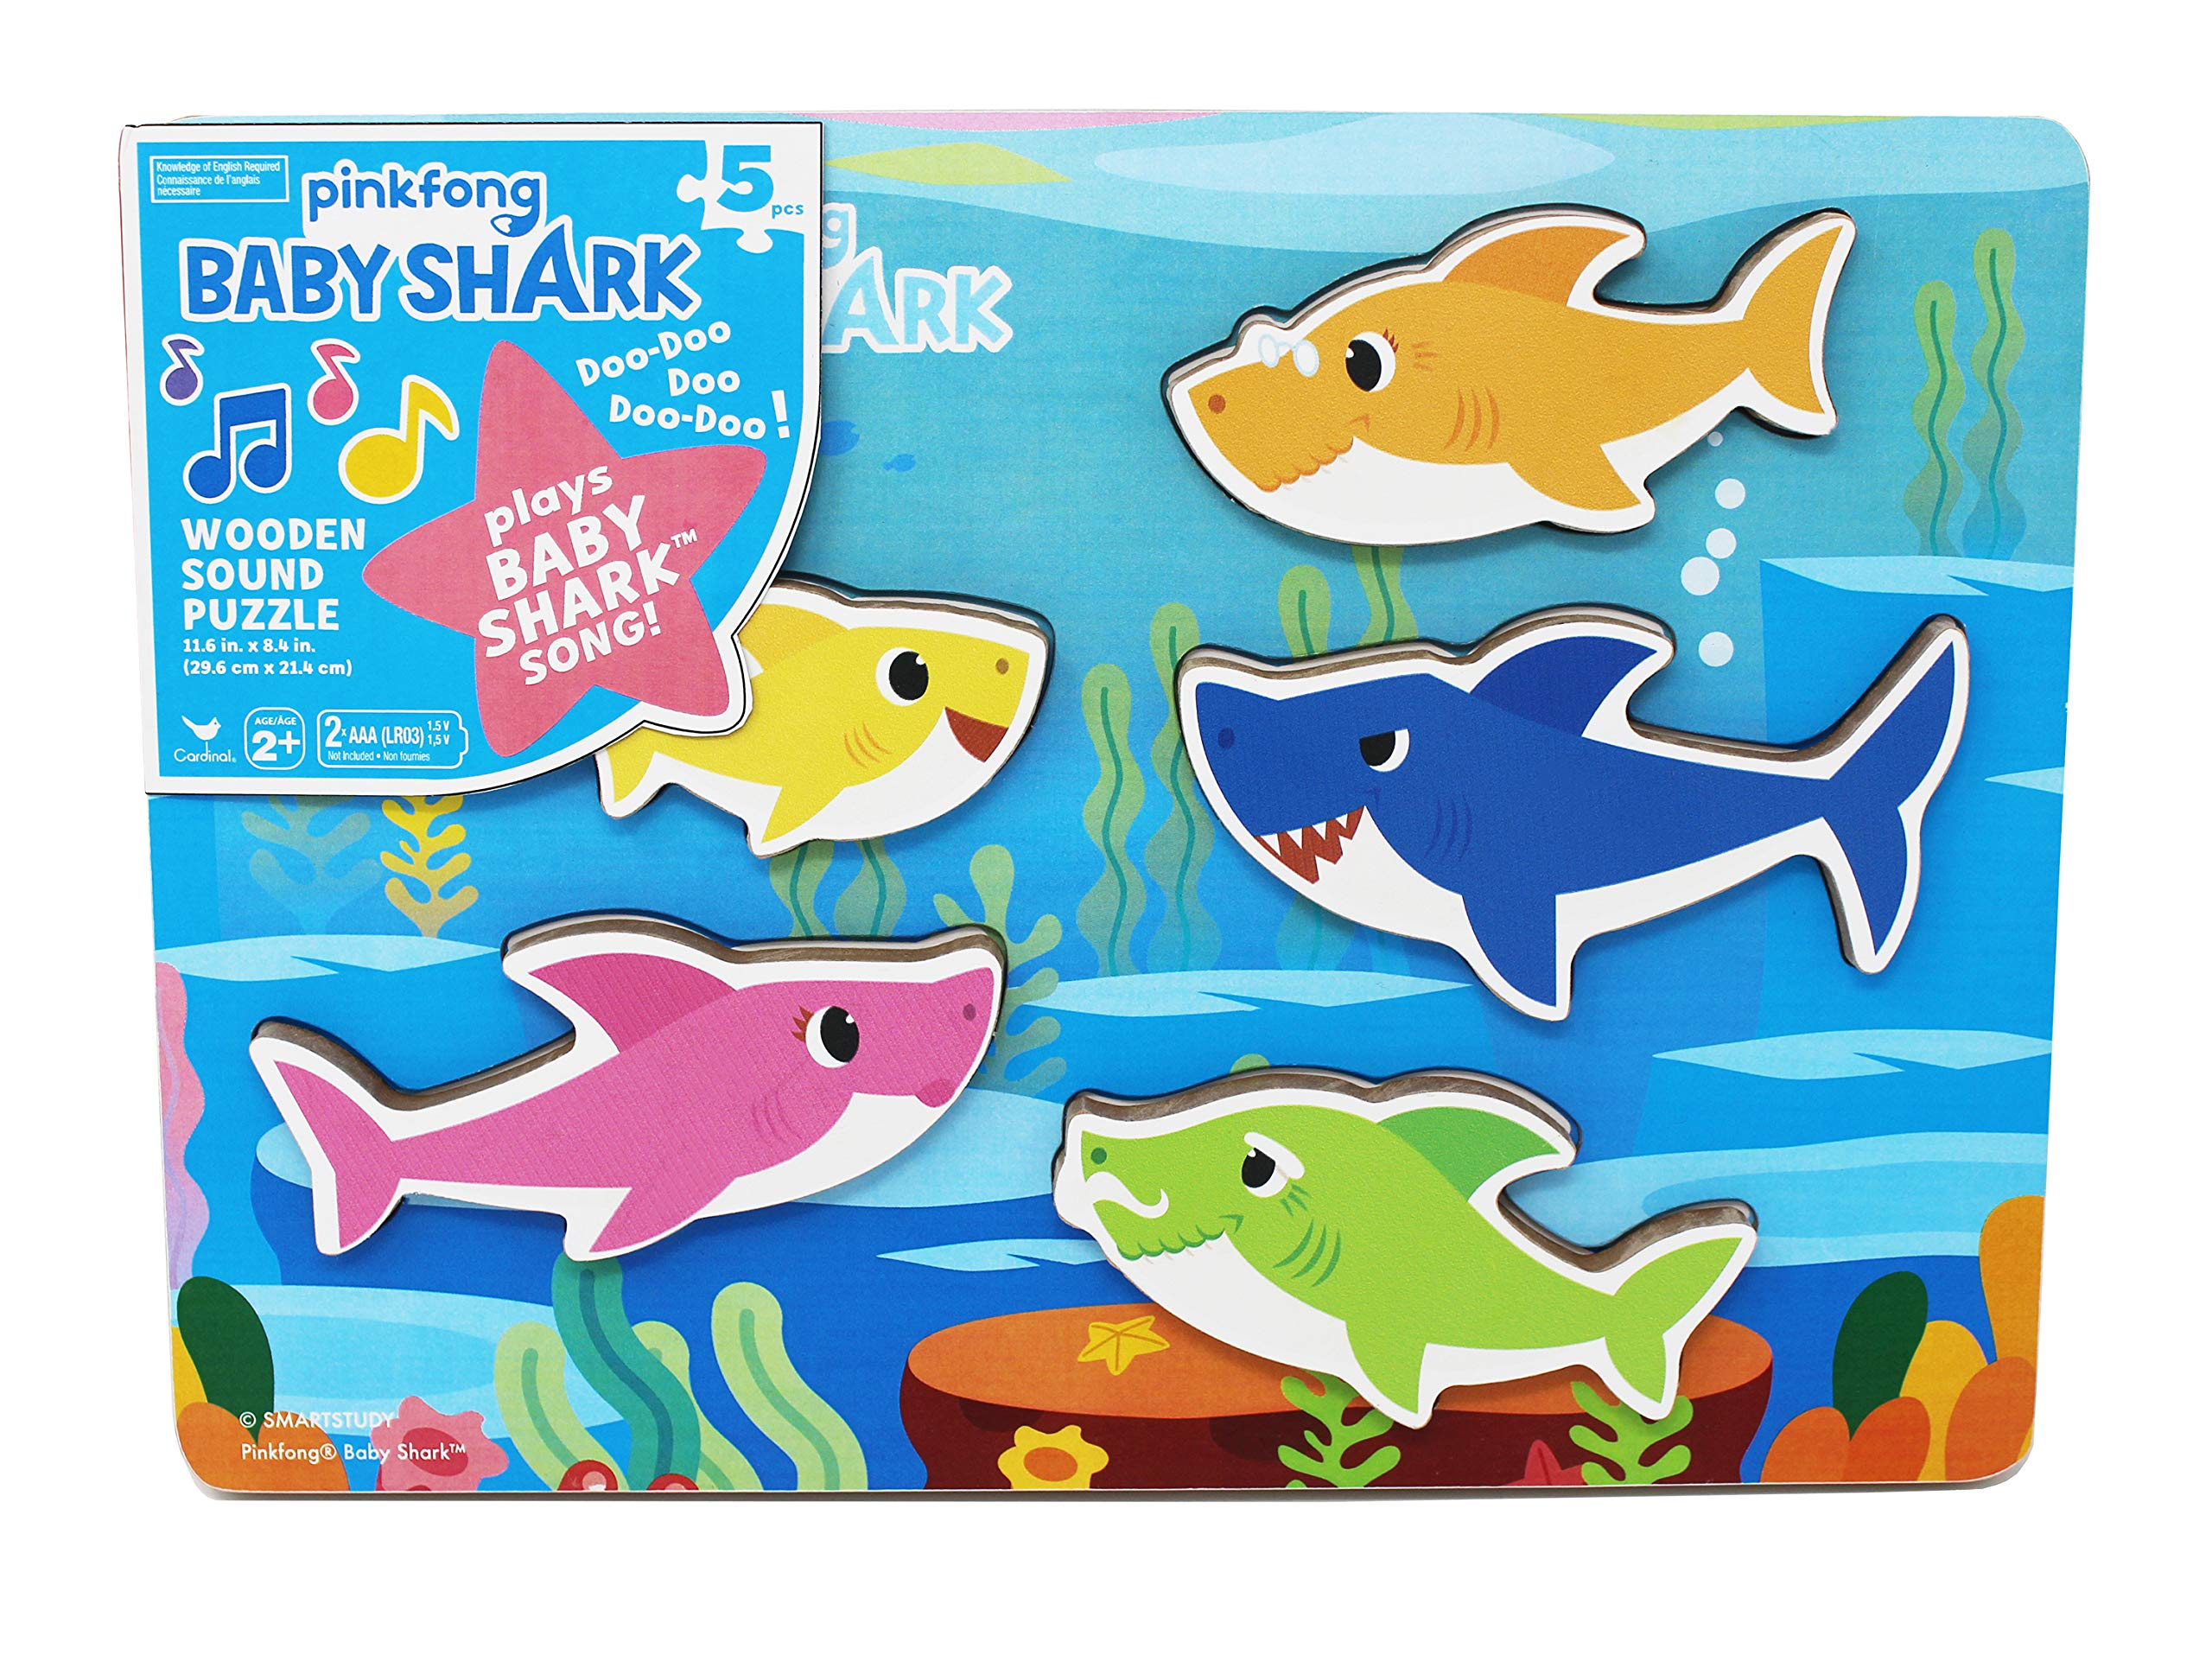 Cardinal Industries 6053347 Pinkfong Baby Shark Chunky Wooden Sound Puzzle - Plays The Baby Shark Song, Multicolor by Cardinal Industries